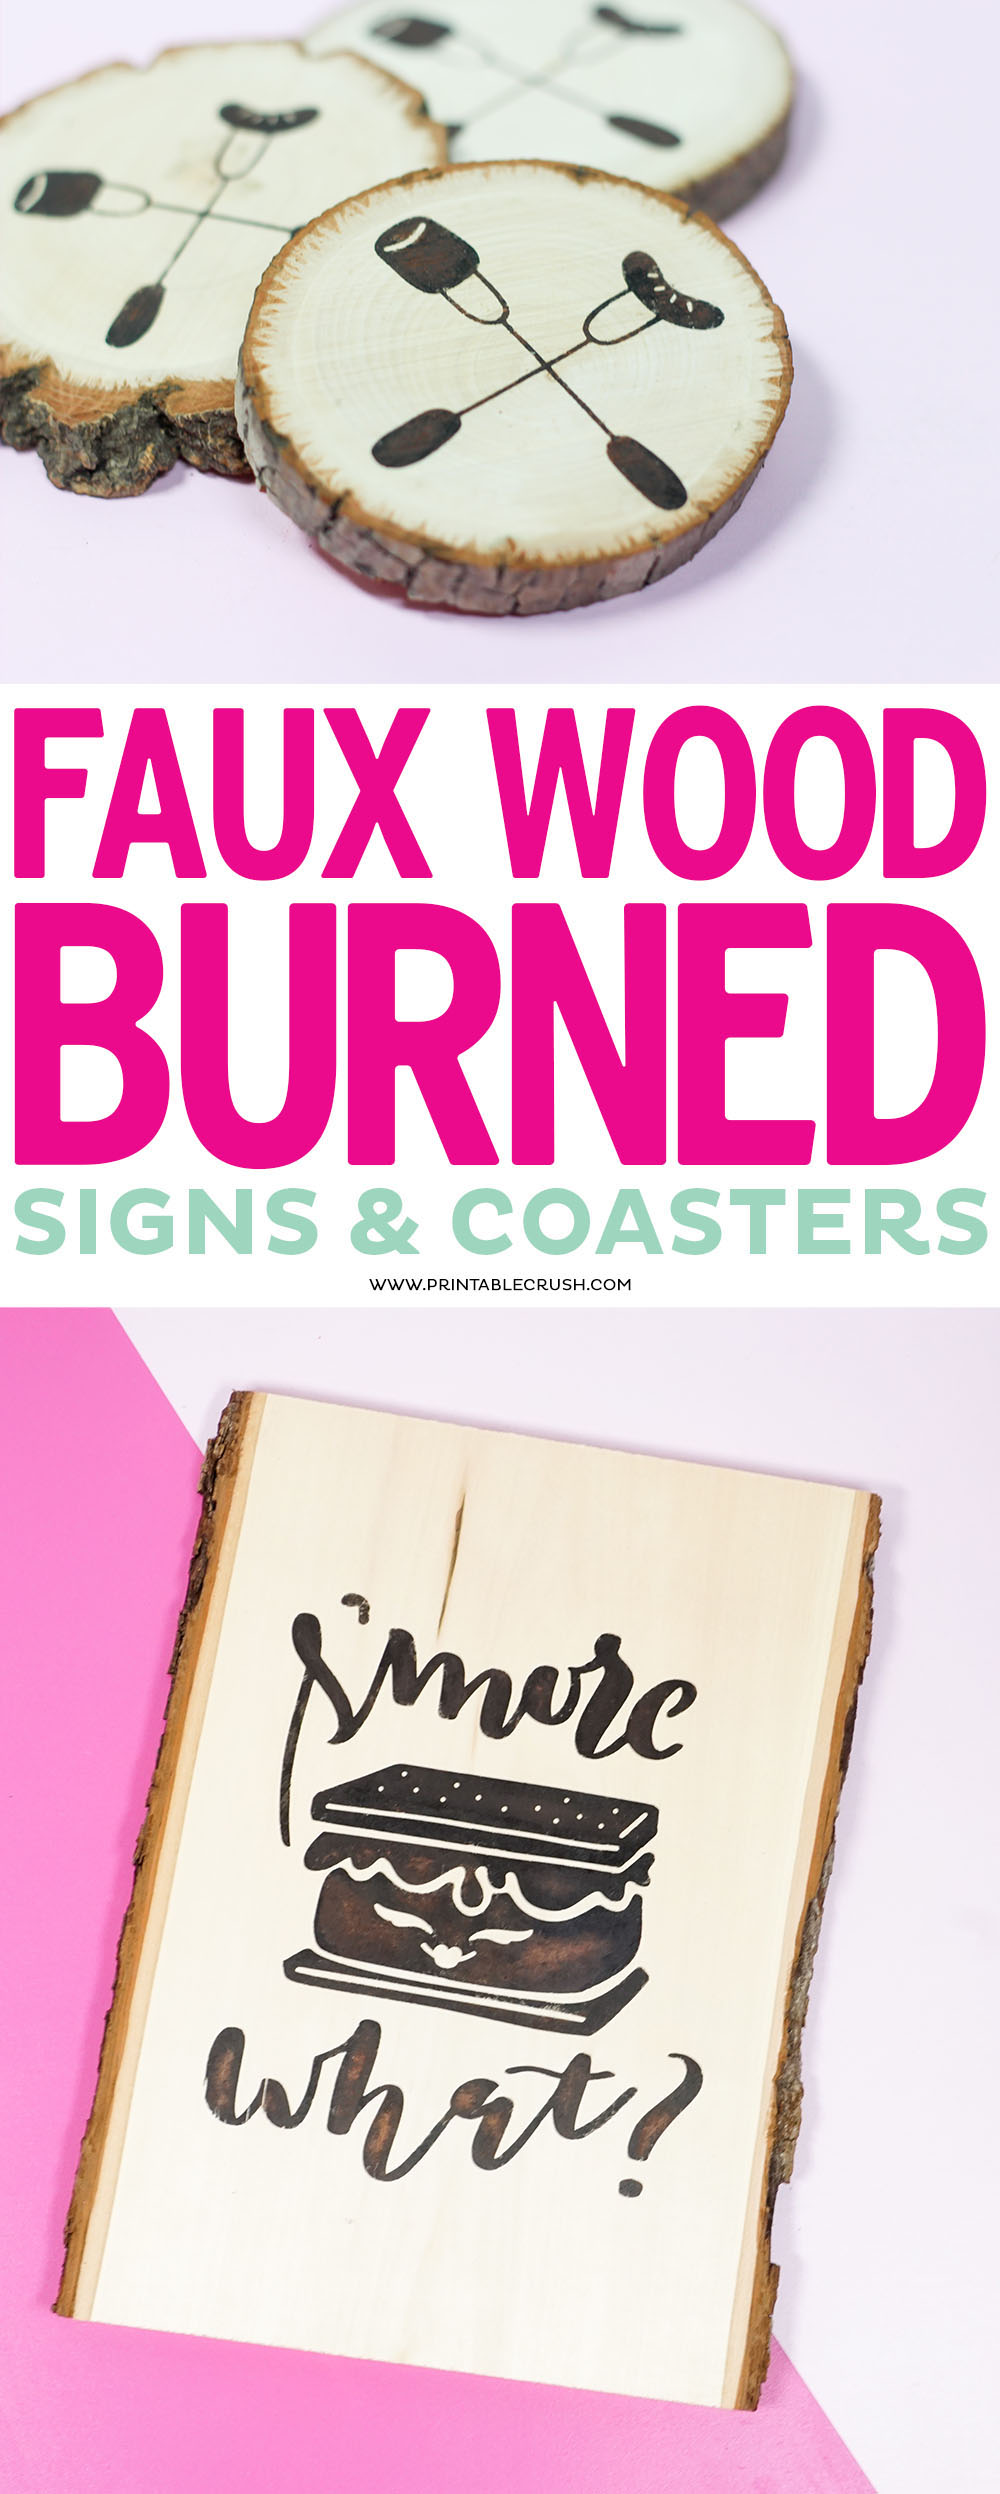 This Faux Wood Burned Sign and Coasters Tutorial is SO easy and no one will know it's painted! It works great with vinyl stencils and such easy cleanup! via @printablecrush